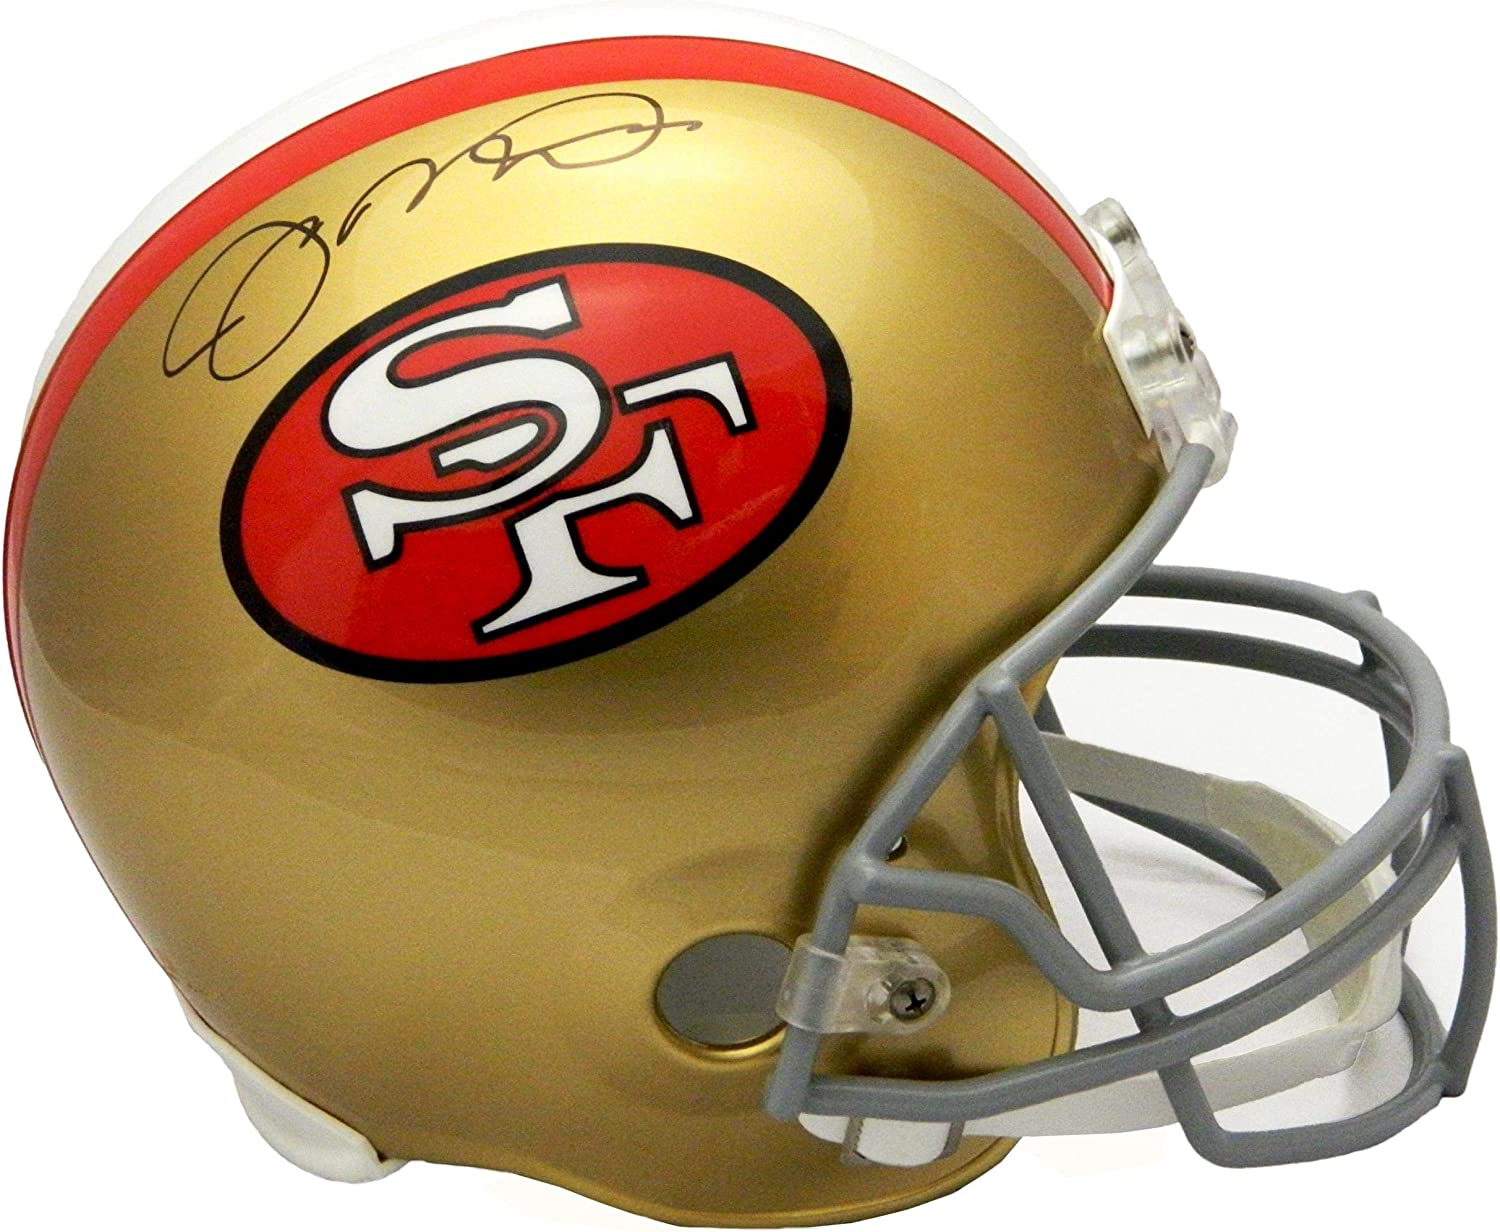 Joe Montana Signed Helmet  Throwback Riddell Full Size Replica  Autographed NFL Helmets